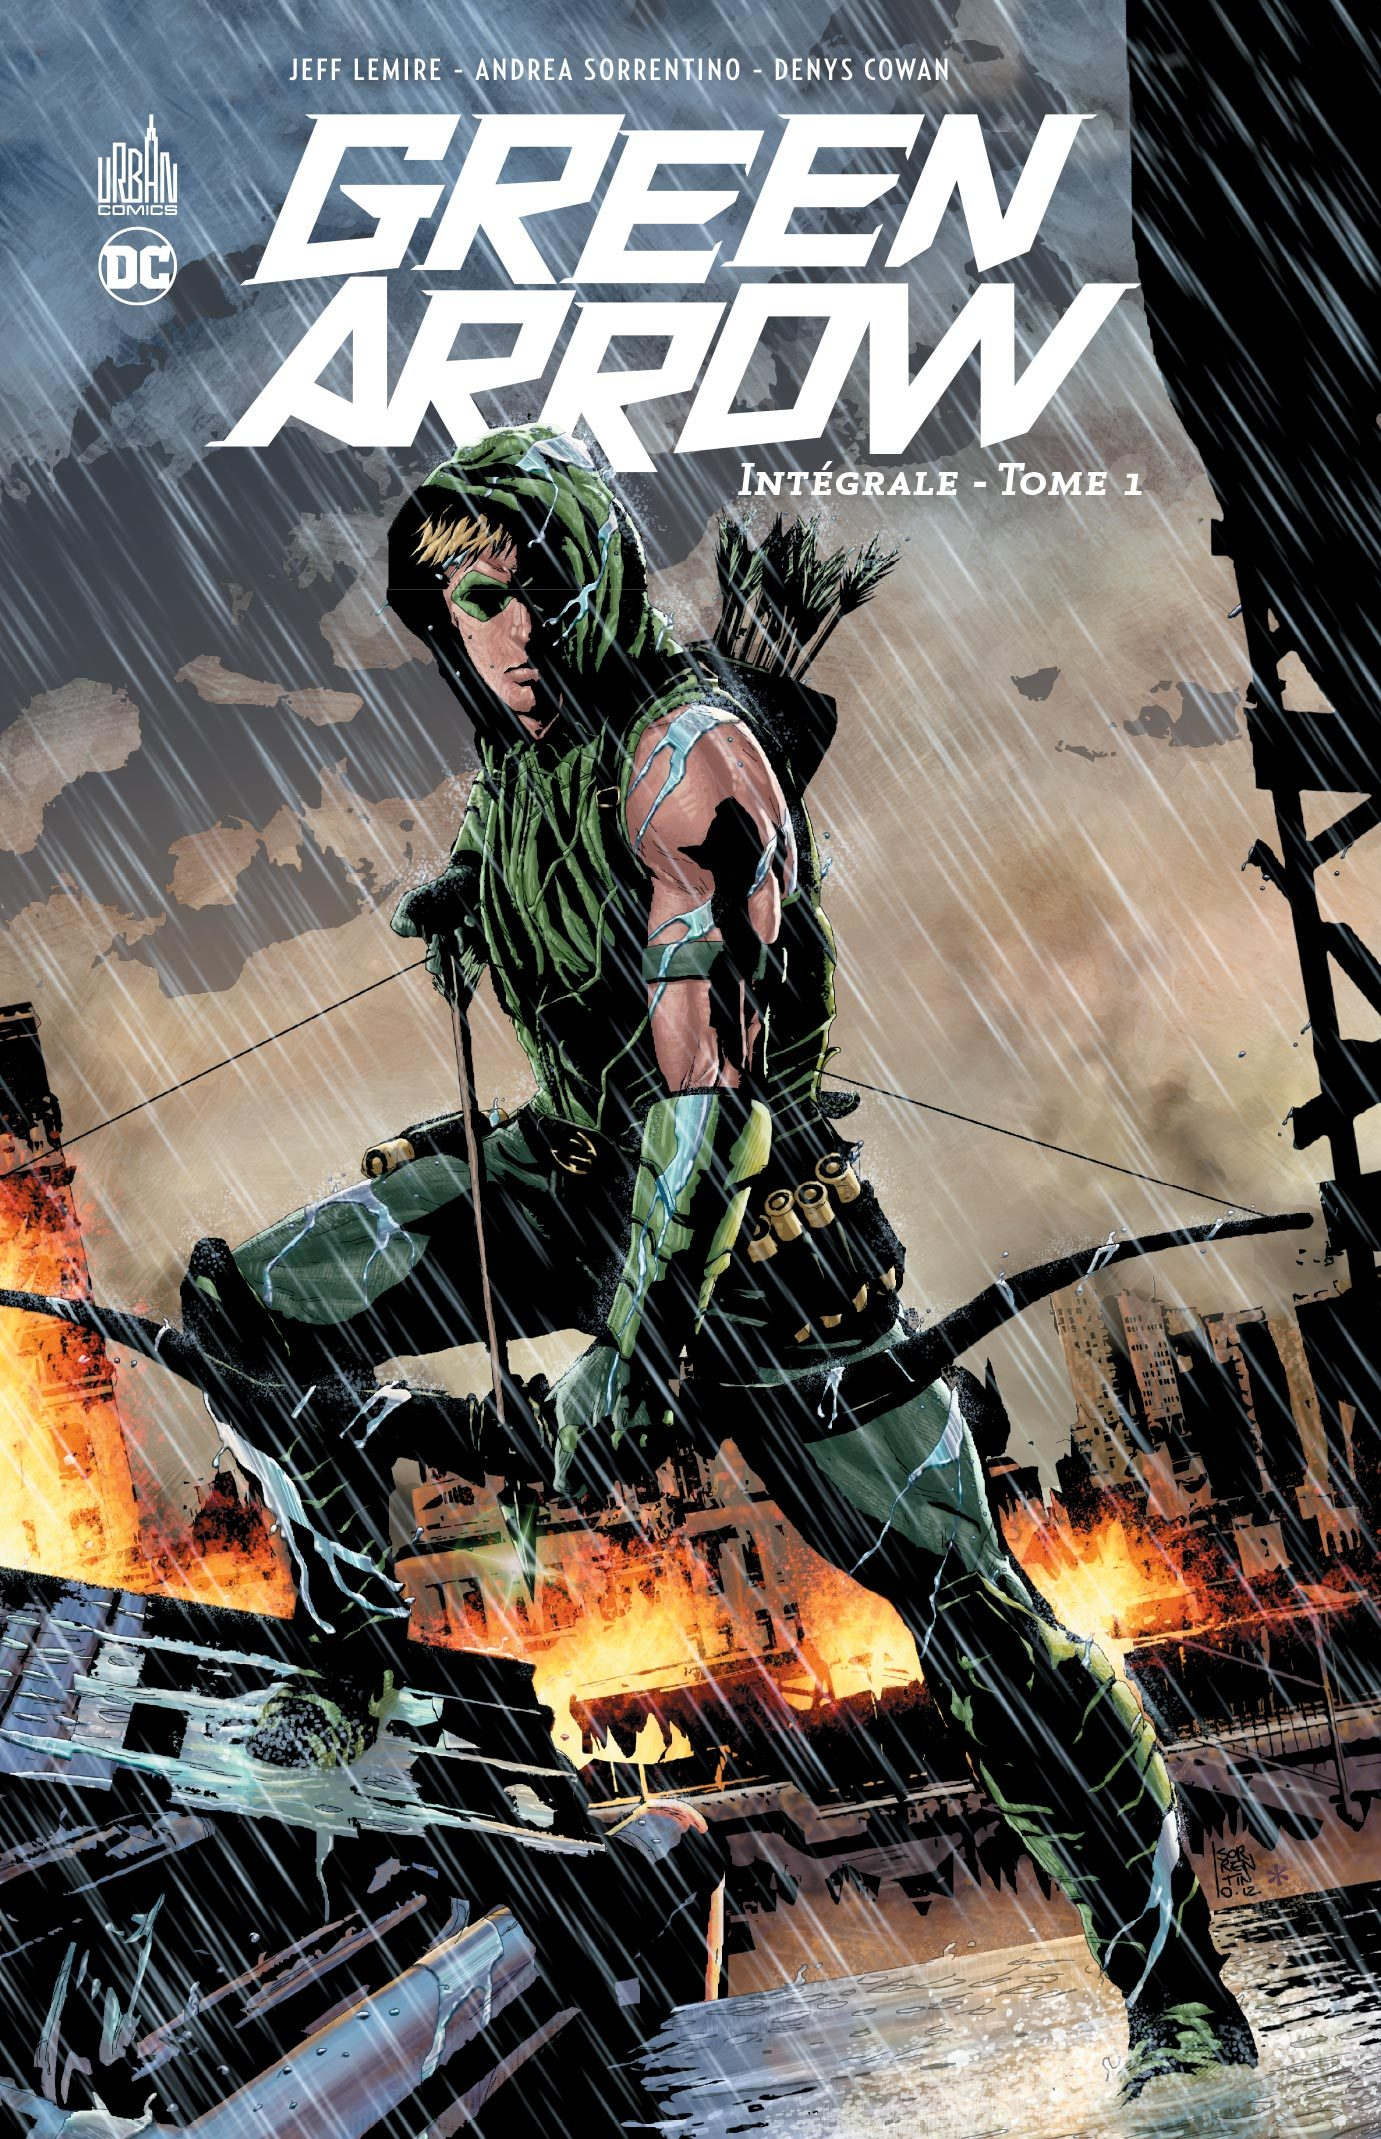 GREEN ARROW INTEGRALE TOME 1